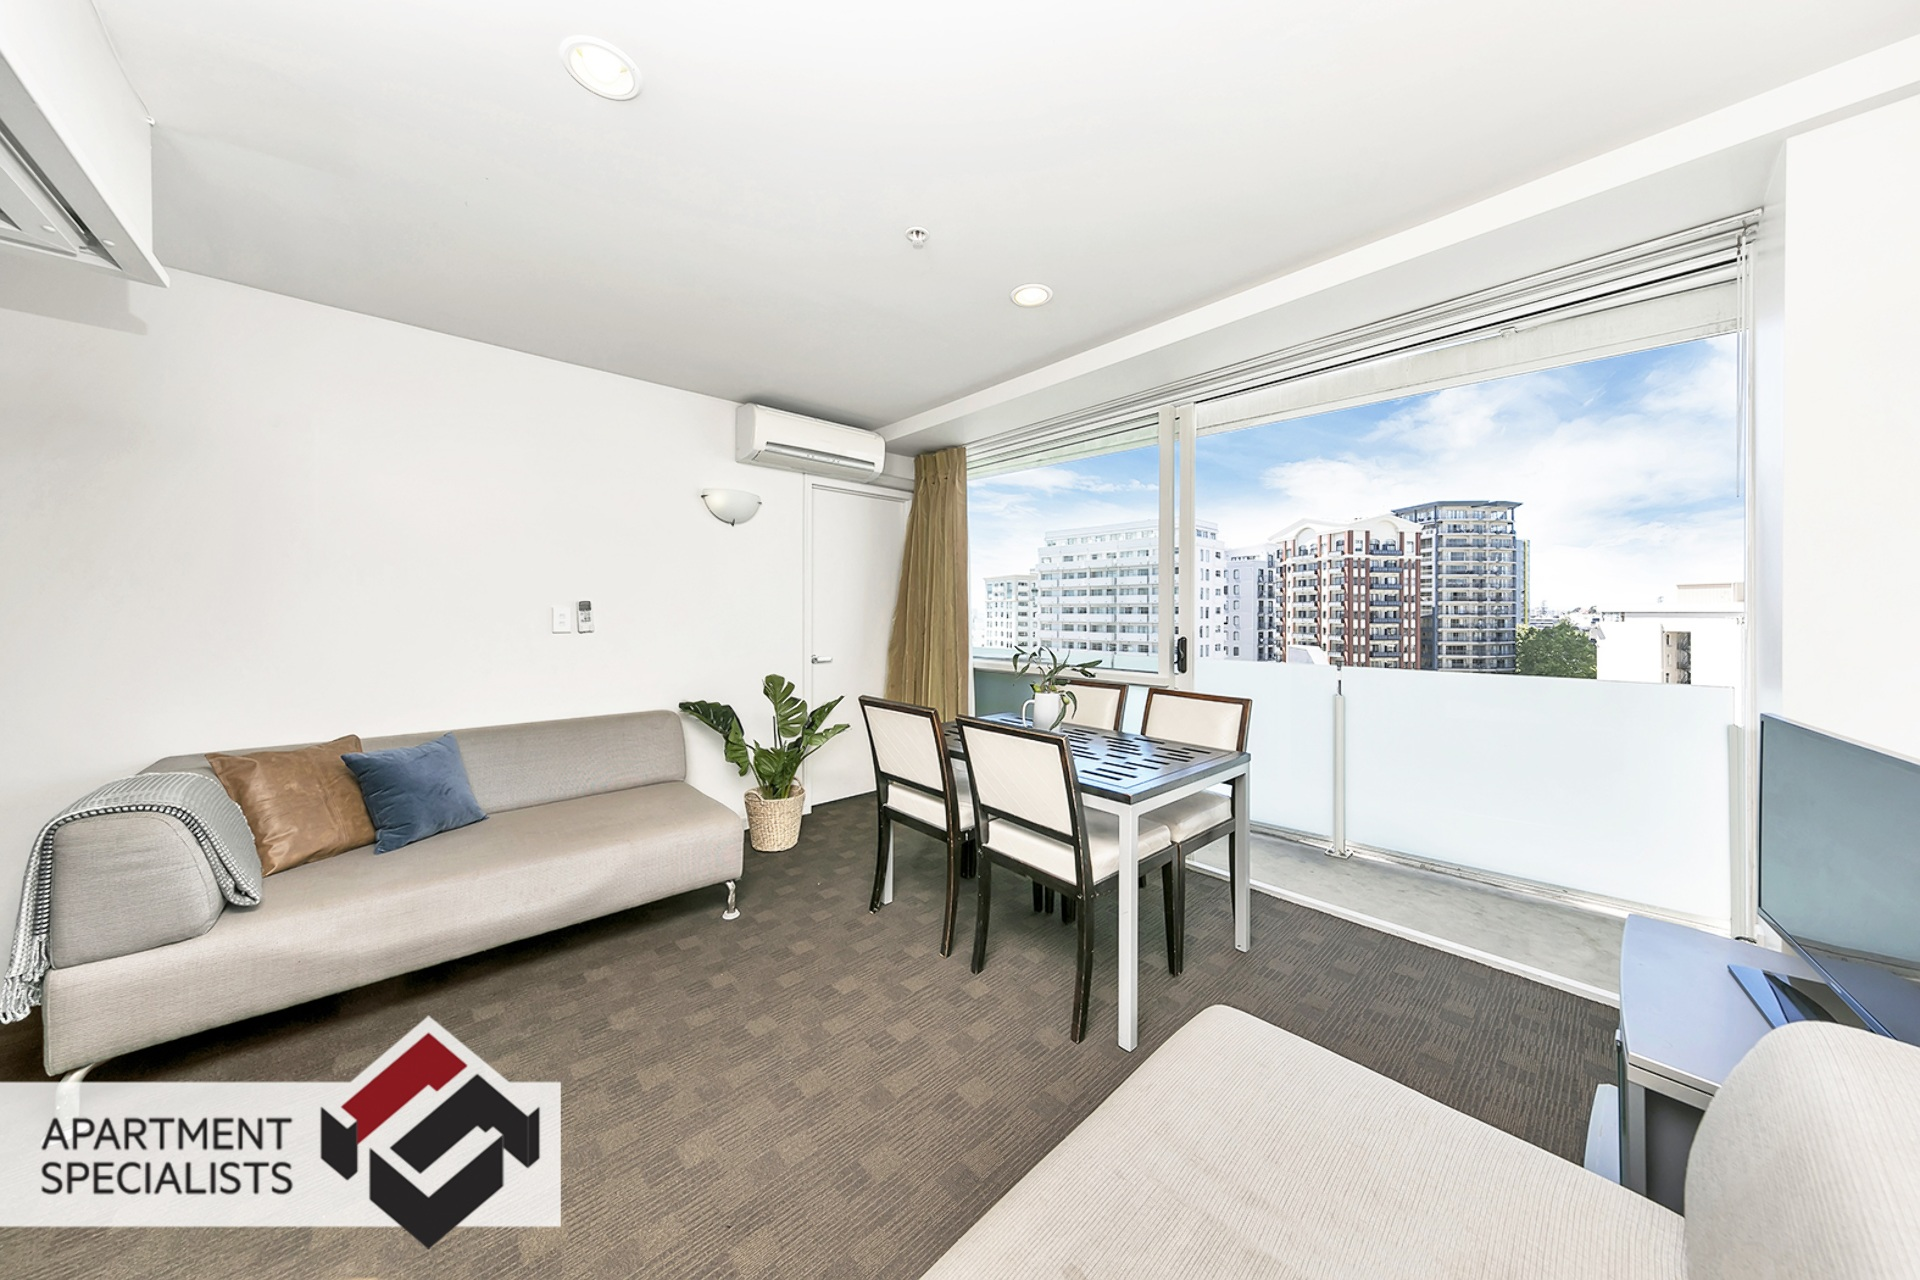 14 | 10 Waterloo Quadrant, City Centre | Apartment Specialists